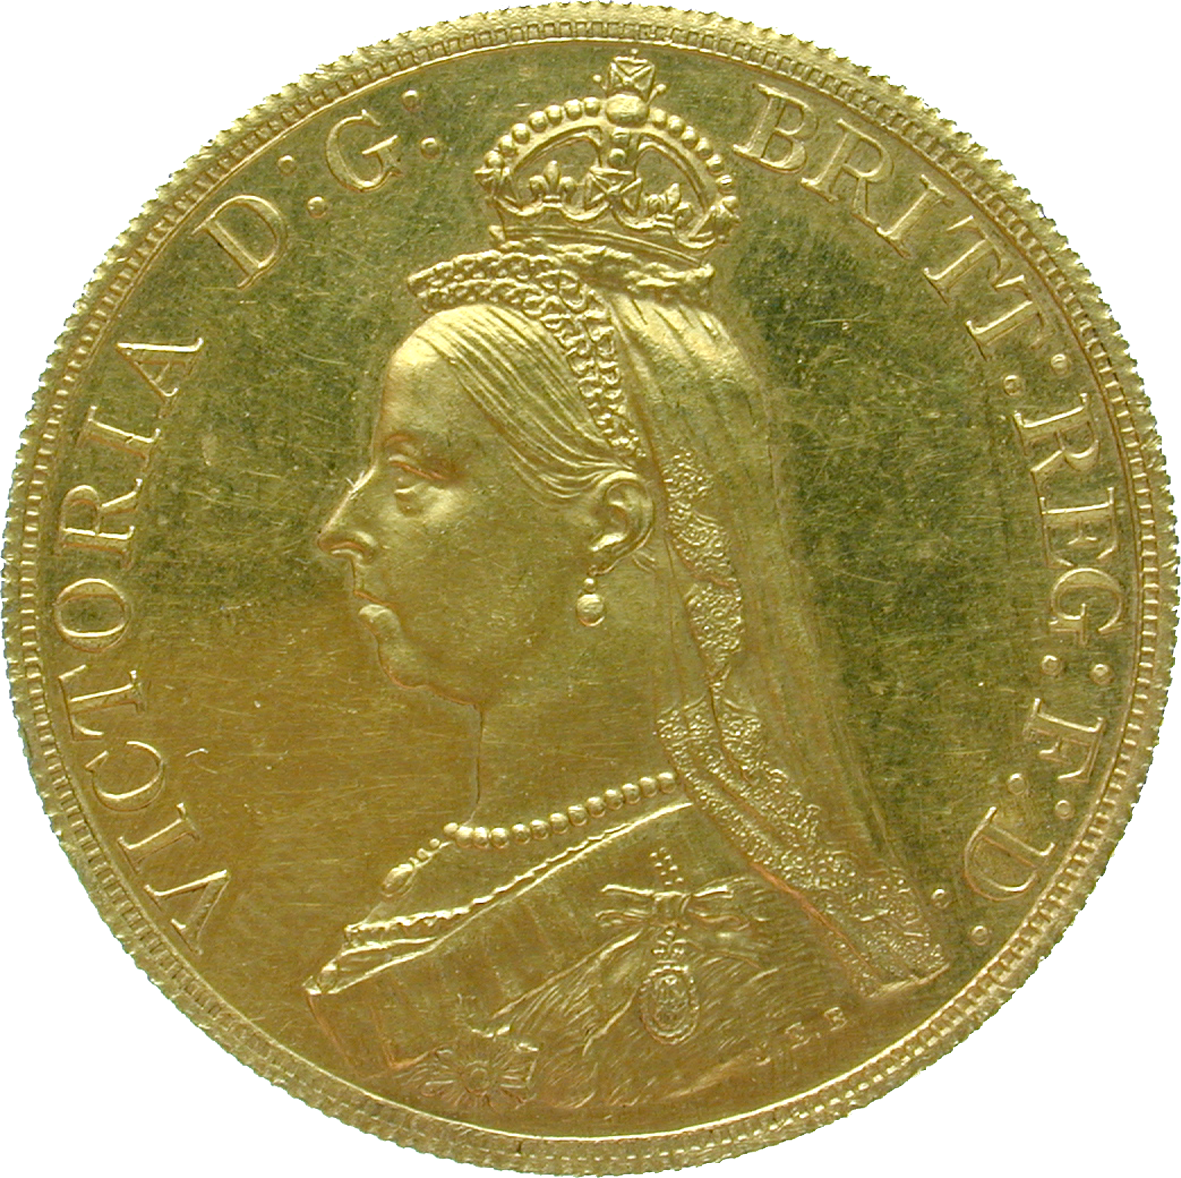 United Kingdom of Great Britain, Victoria, 5 Pounds 1887 (obverse)